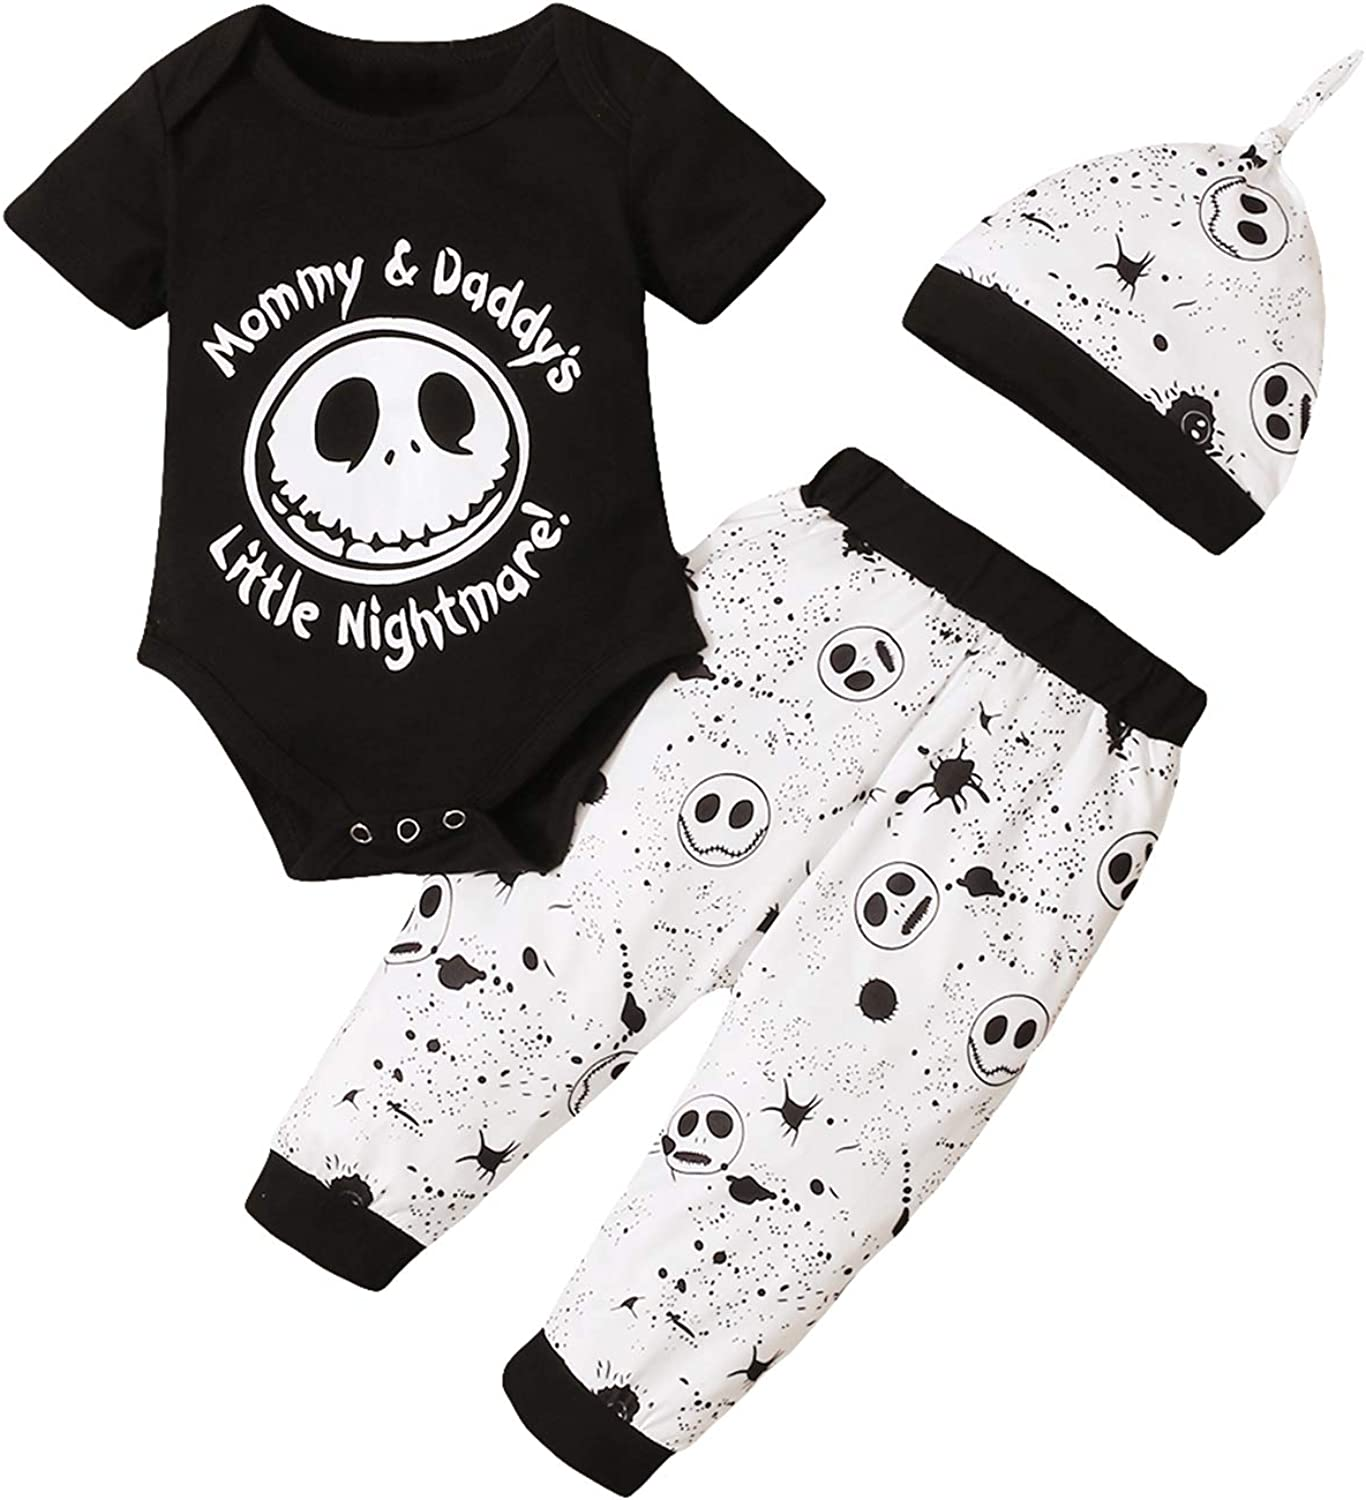 Dramiposs Baby Boy Halloween Outfits Infant Nightmare Before Christmas Clothes